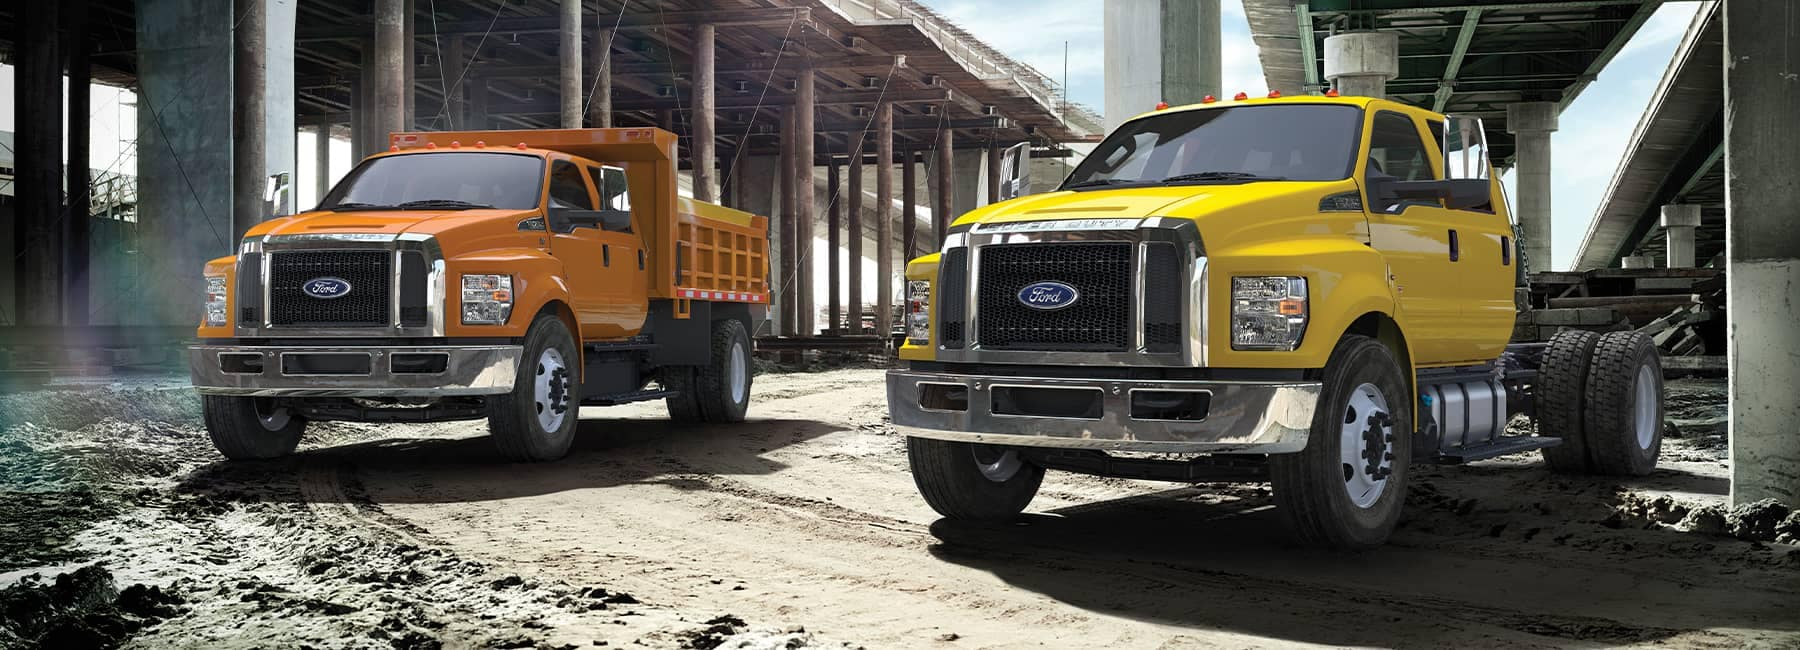 2021 Ford Commercial trucks at a construction site